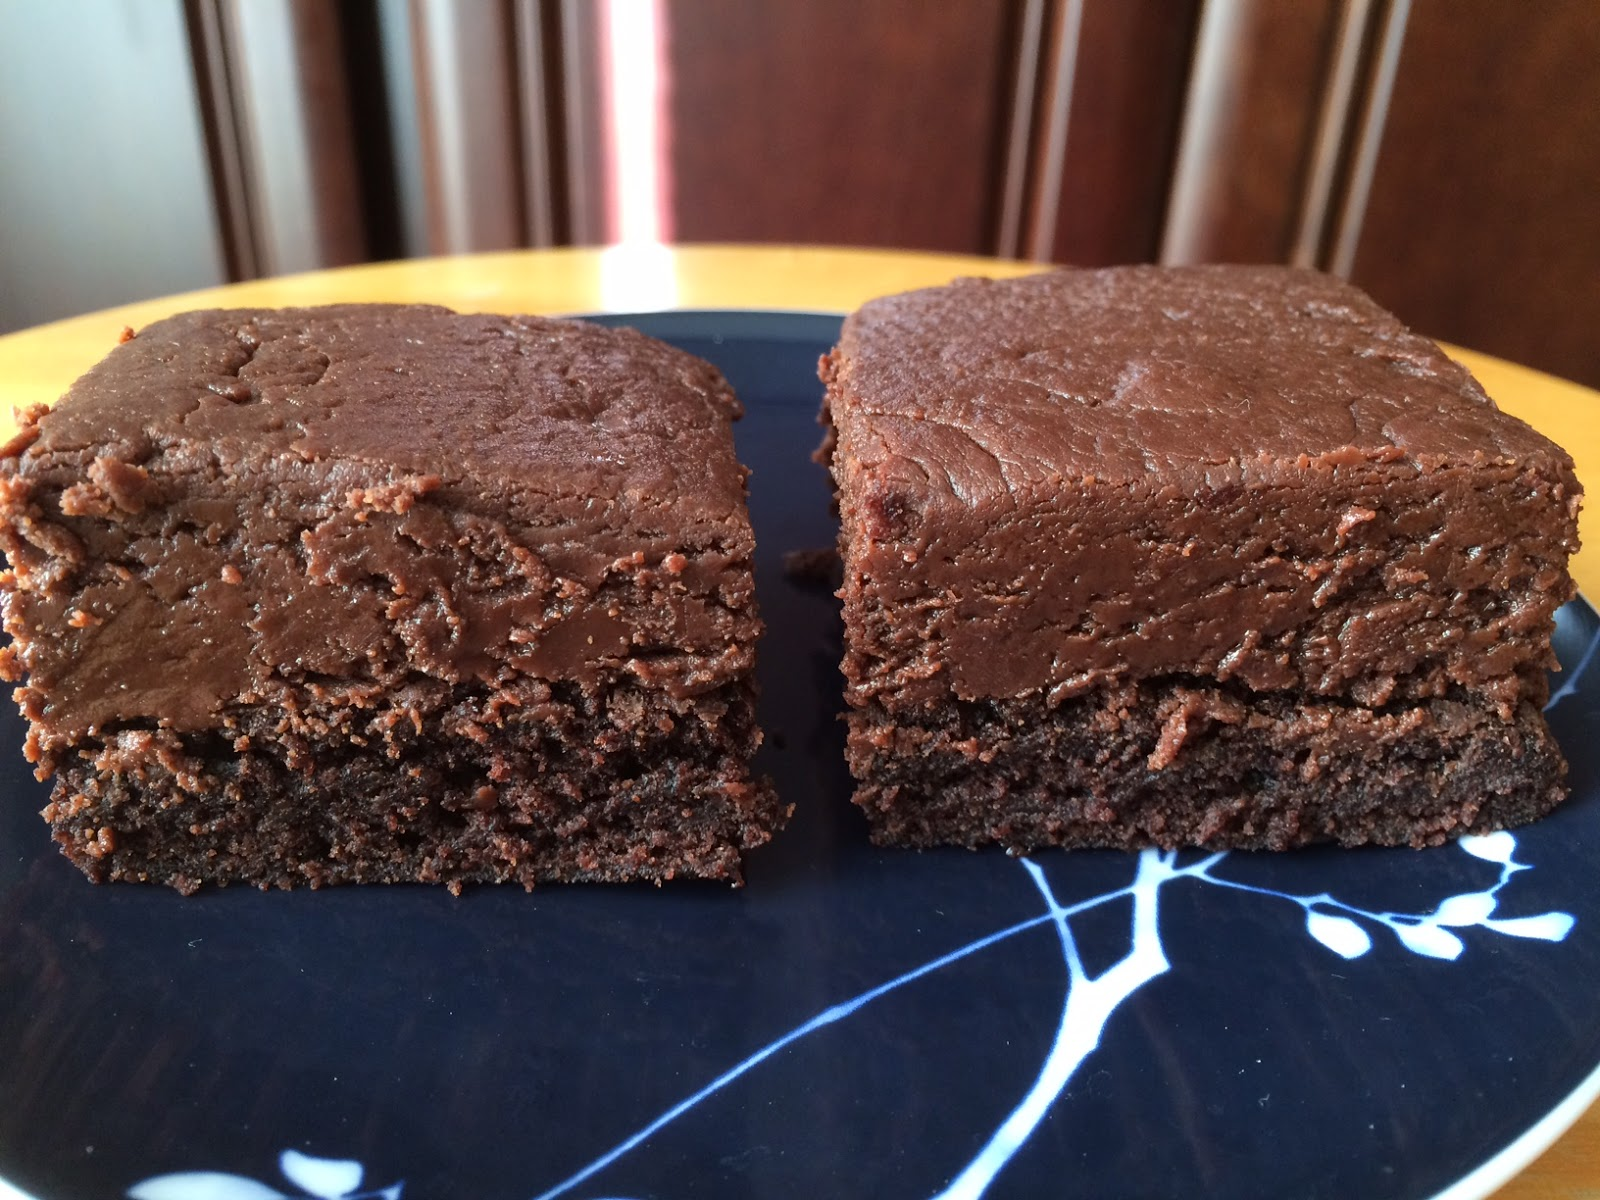 The Pastry Chef's Baking: Nutella Fudge Brownies